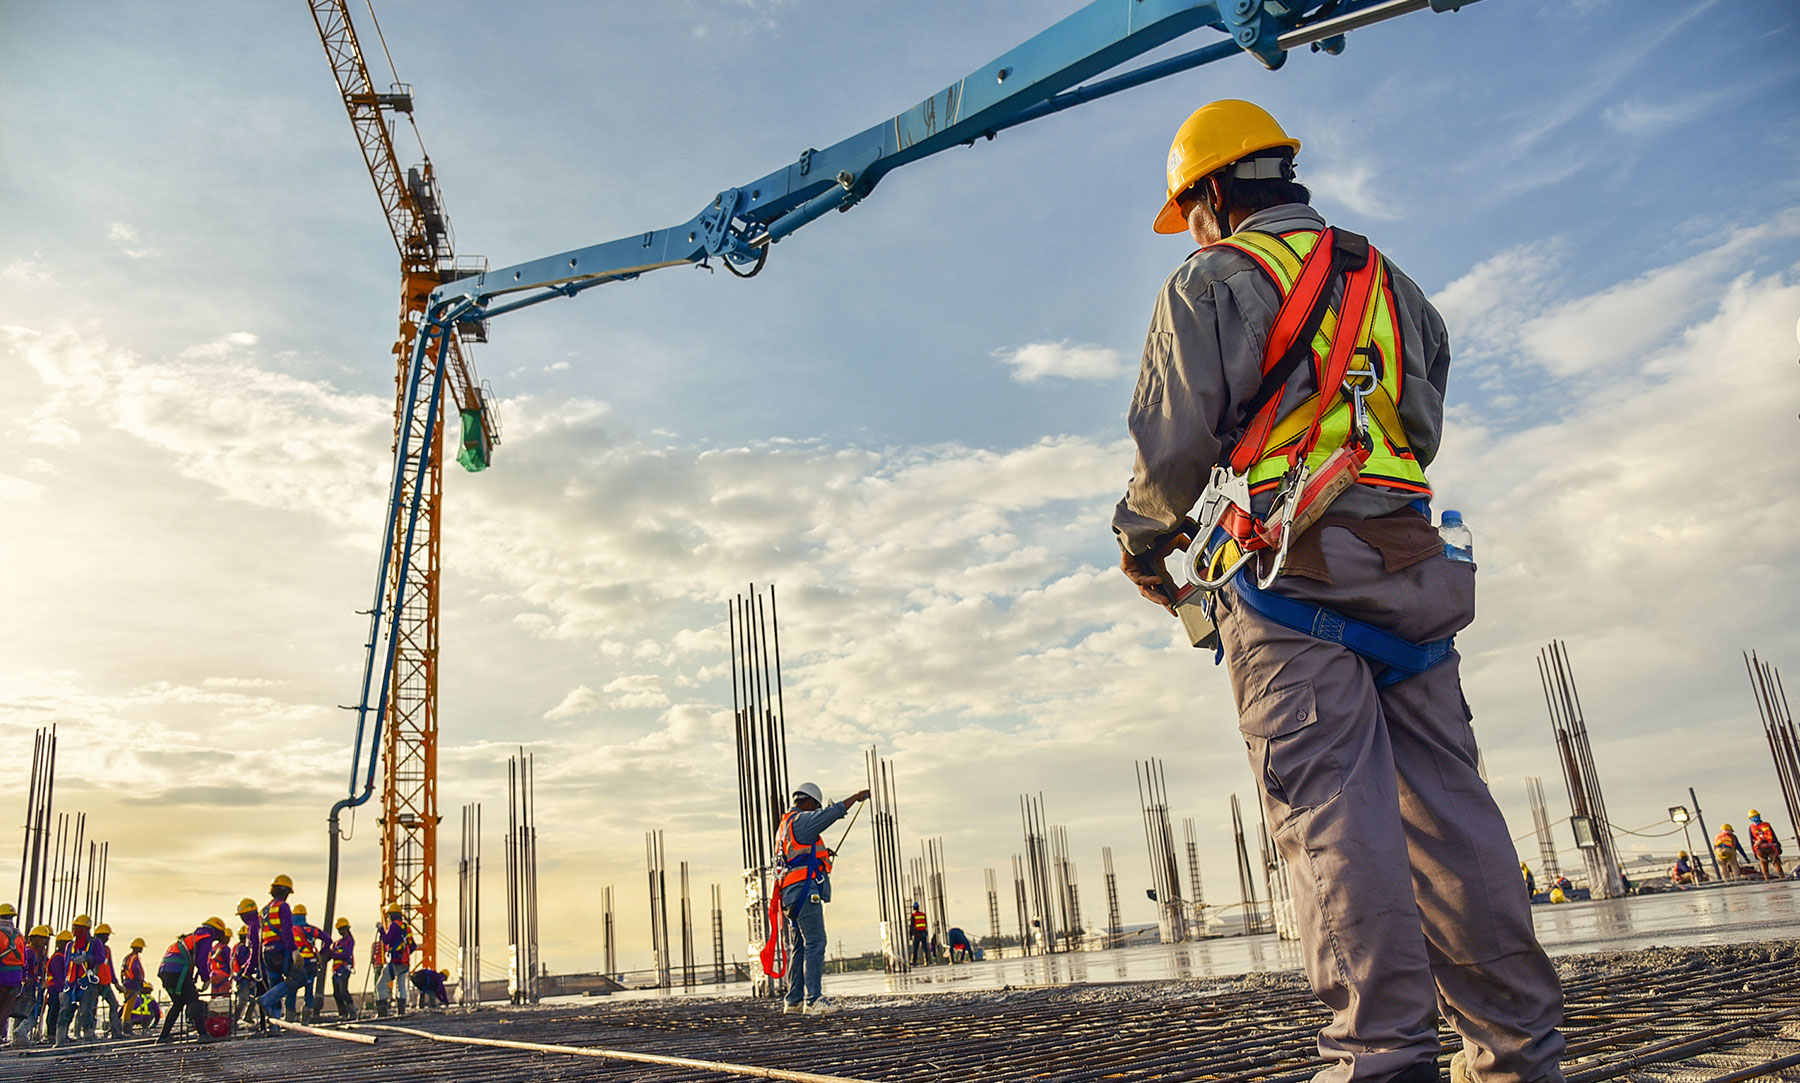 Spark Safety Solutions joins Danatec to create one of the largest safety solutions companies in Canada